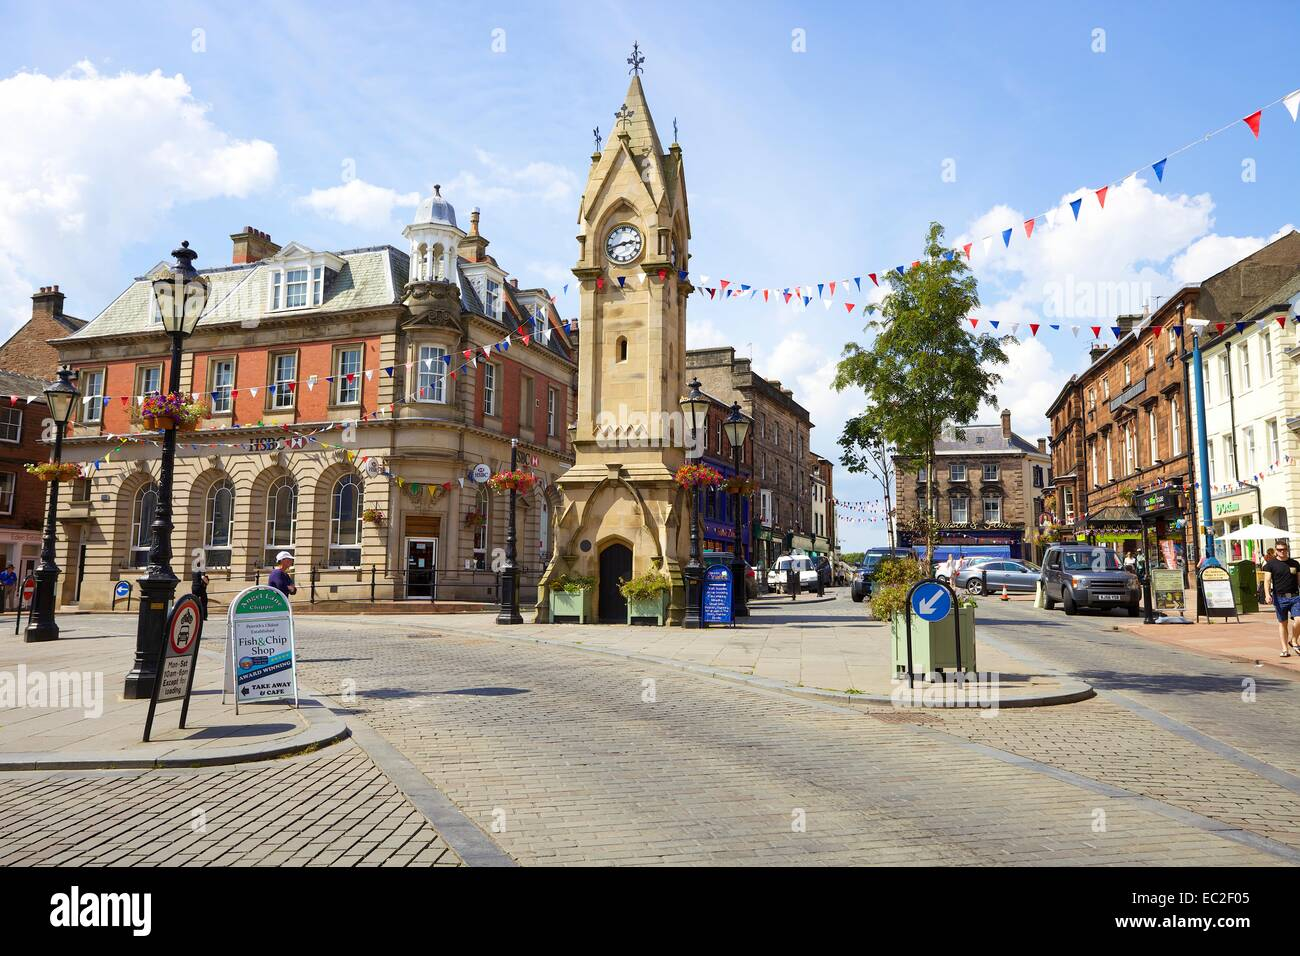 Town clock in the paved Market Square, King Street in Penrith town centre, Cumbria, England United Kingdom. - Stock Image